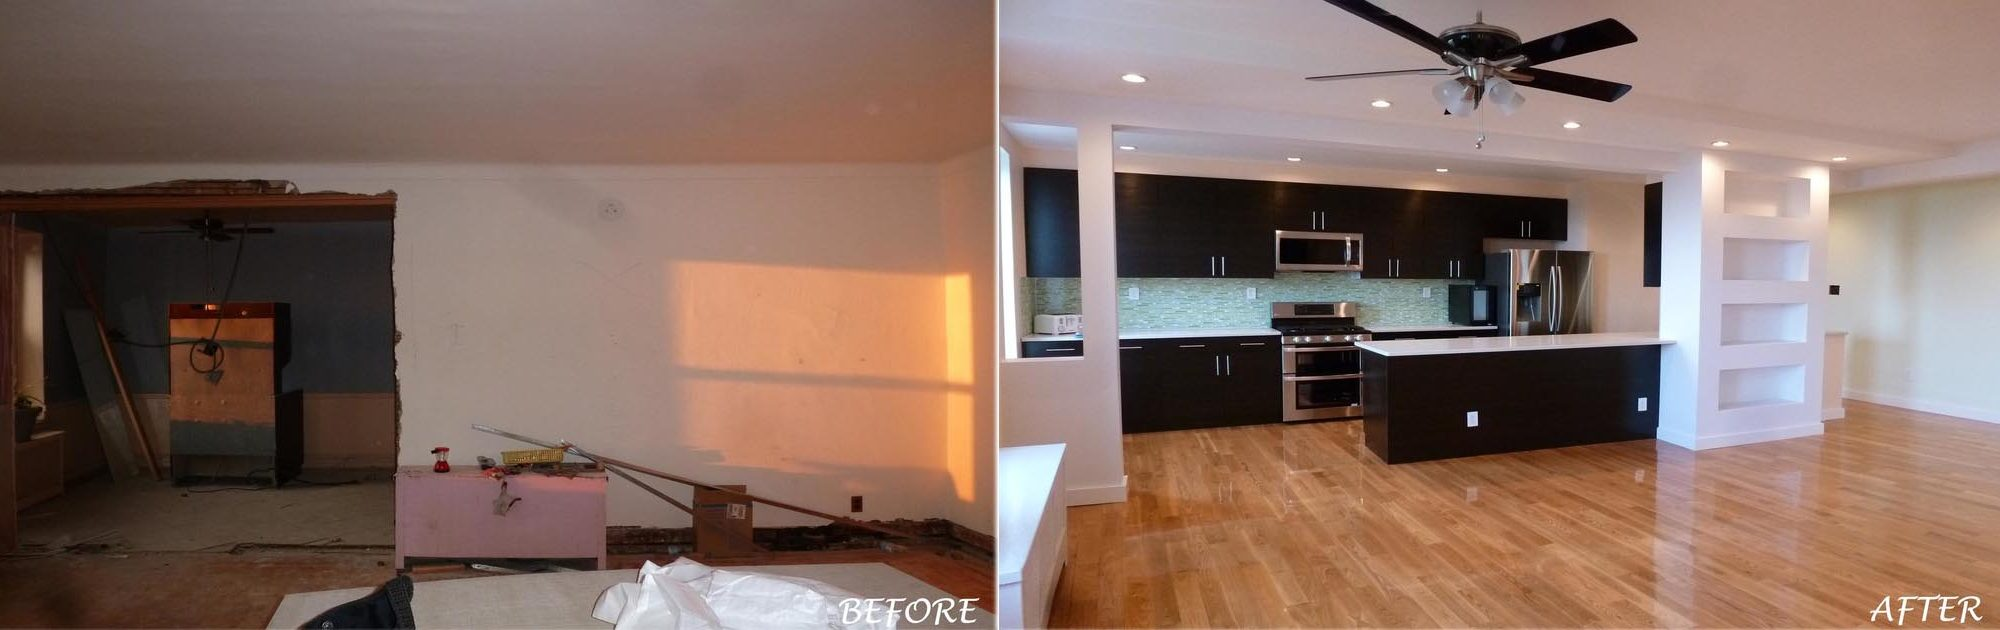 Laura S - Brooklyn, NY - Apartment Remodeling